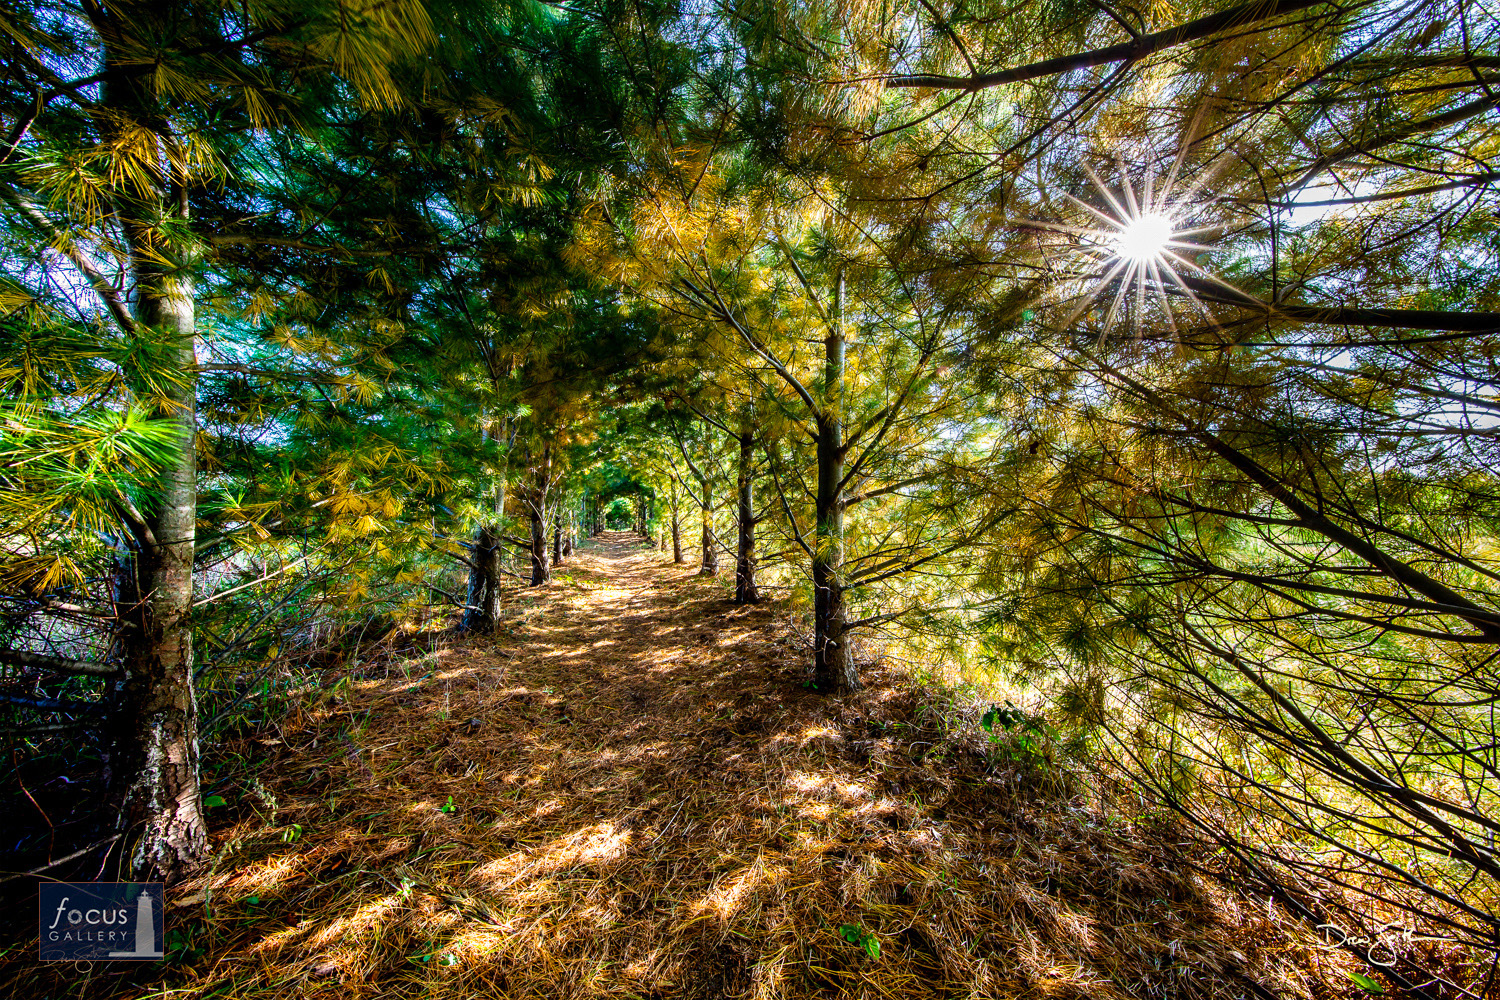 Photo © Drew Smith Located on private property near Frankfort, this tunnel of trees is a project more than 15 years in the making...